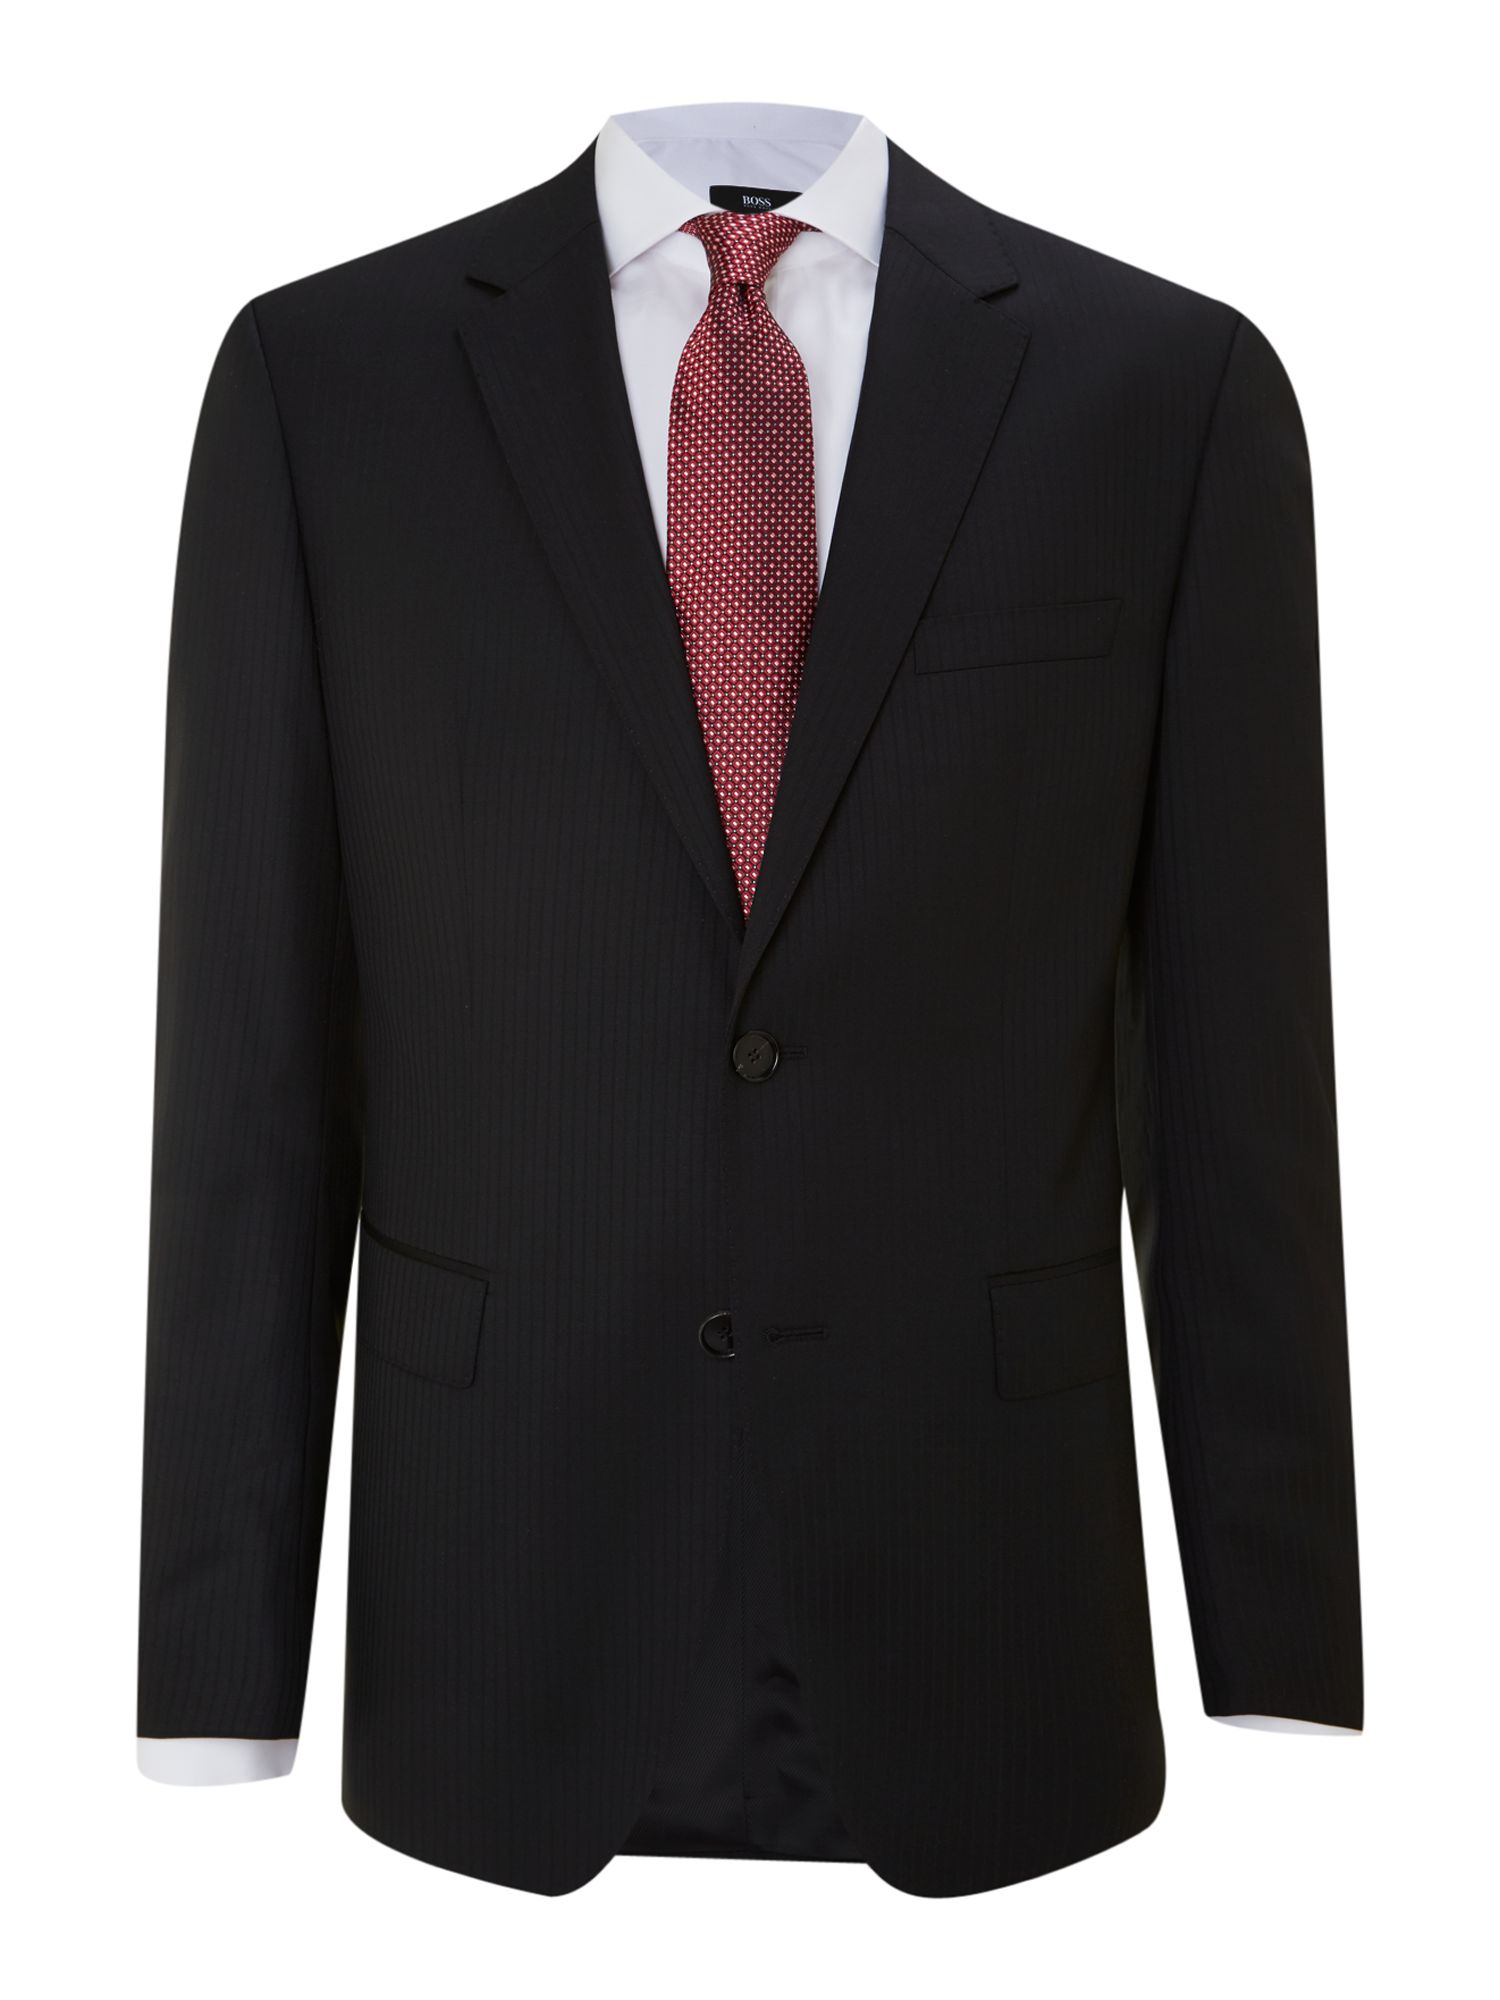 The James Sharp self stripe regular fit suit